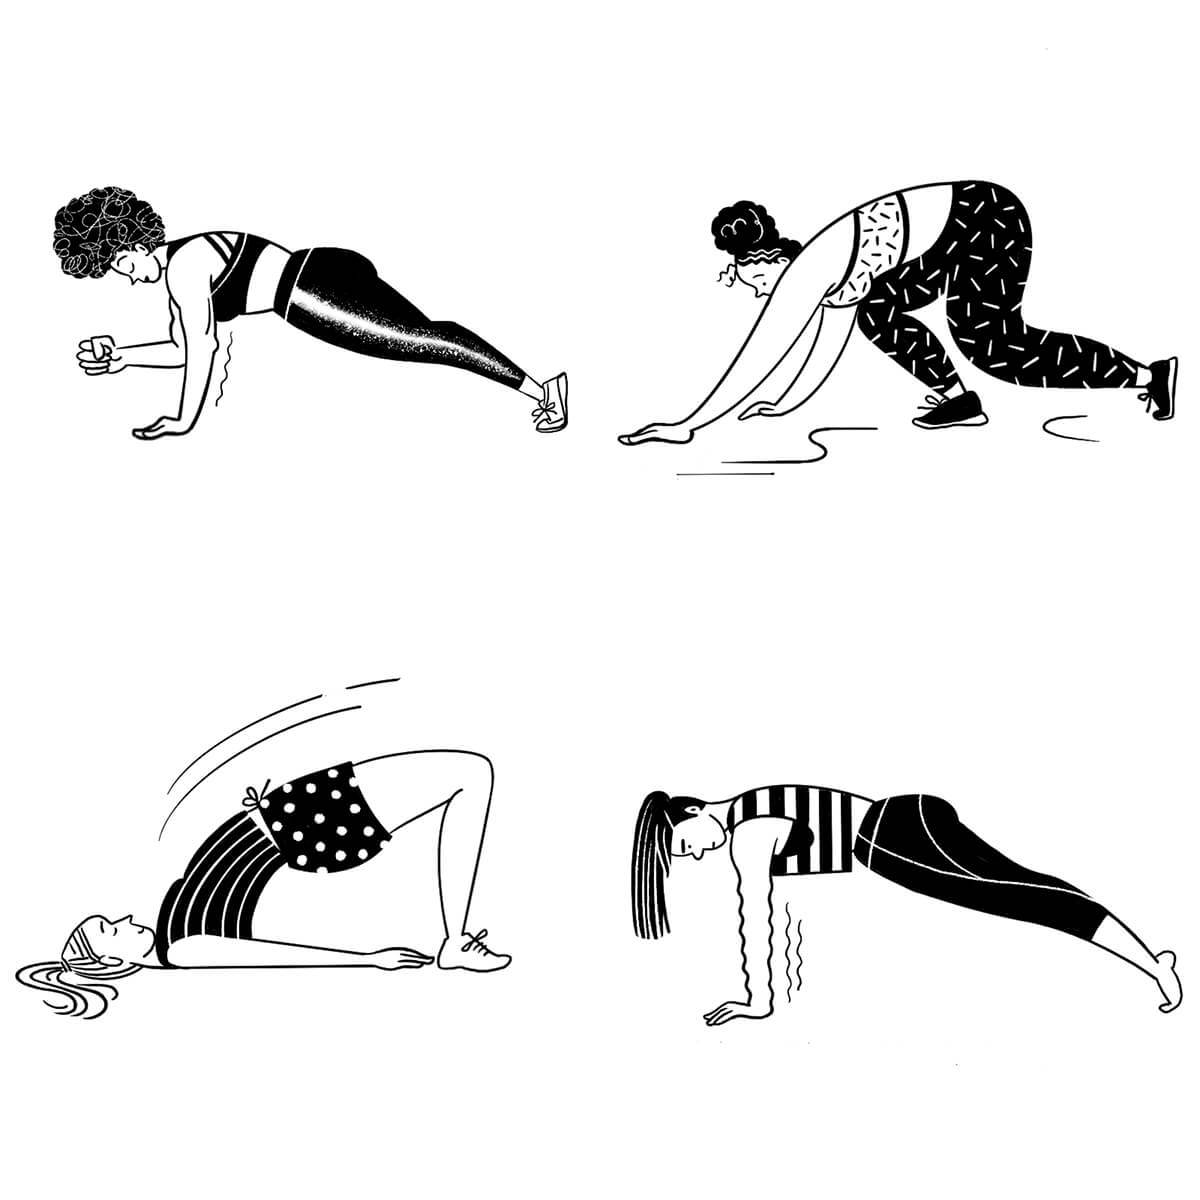 Charmed Life Workout